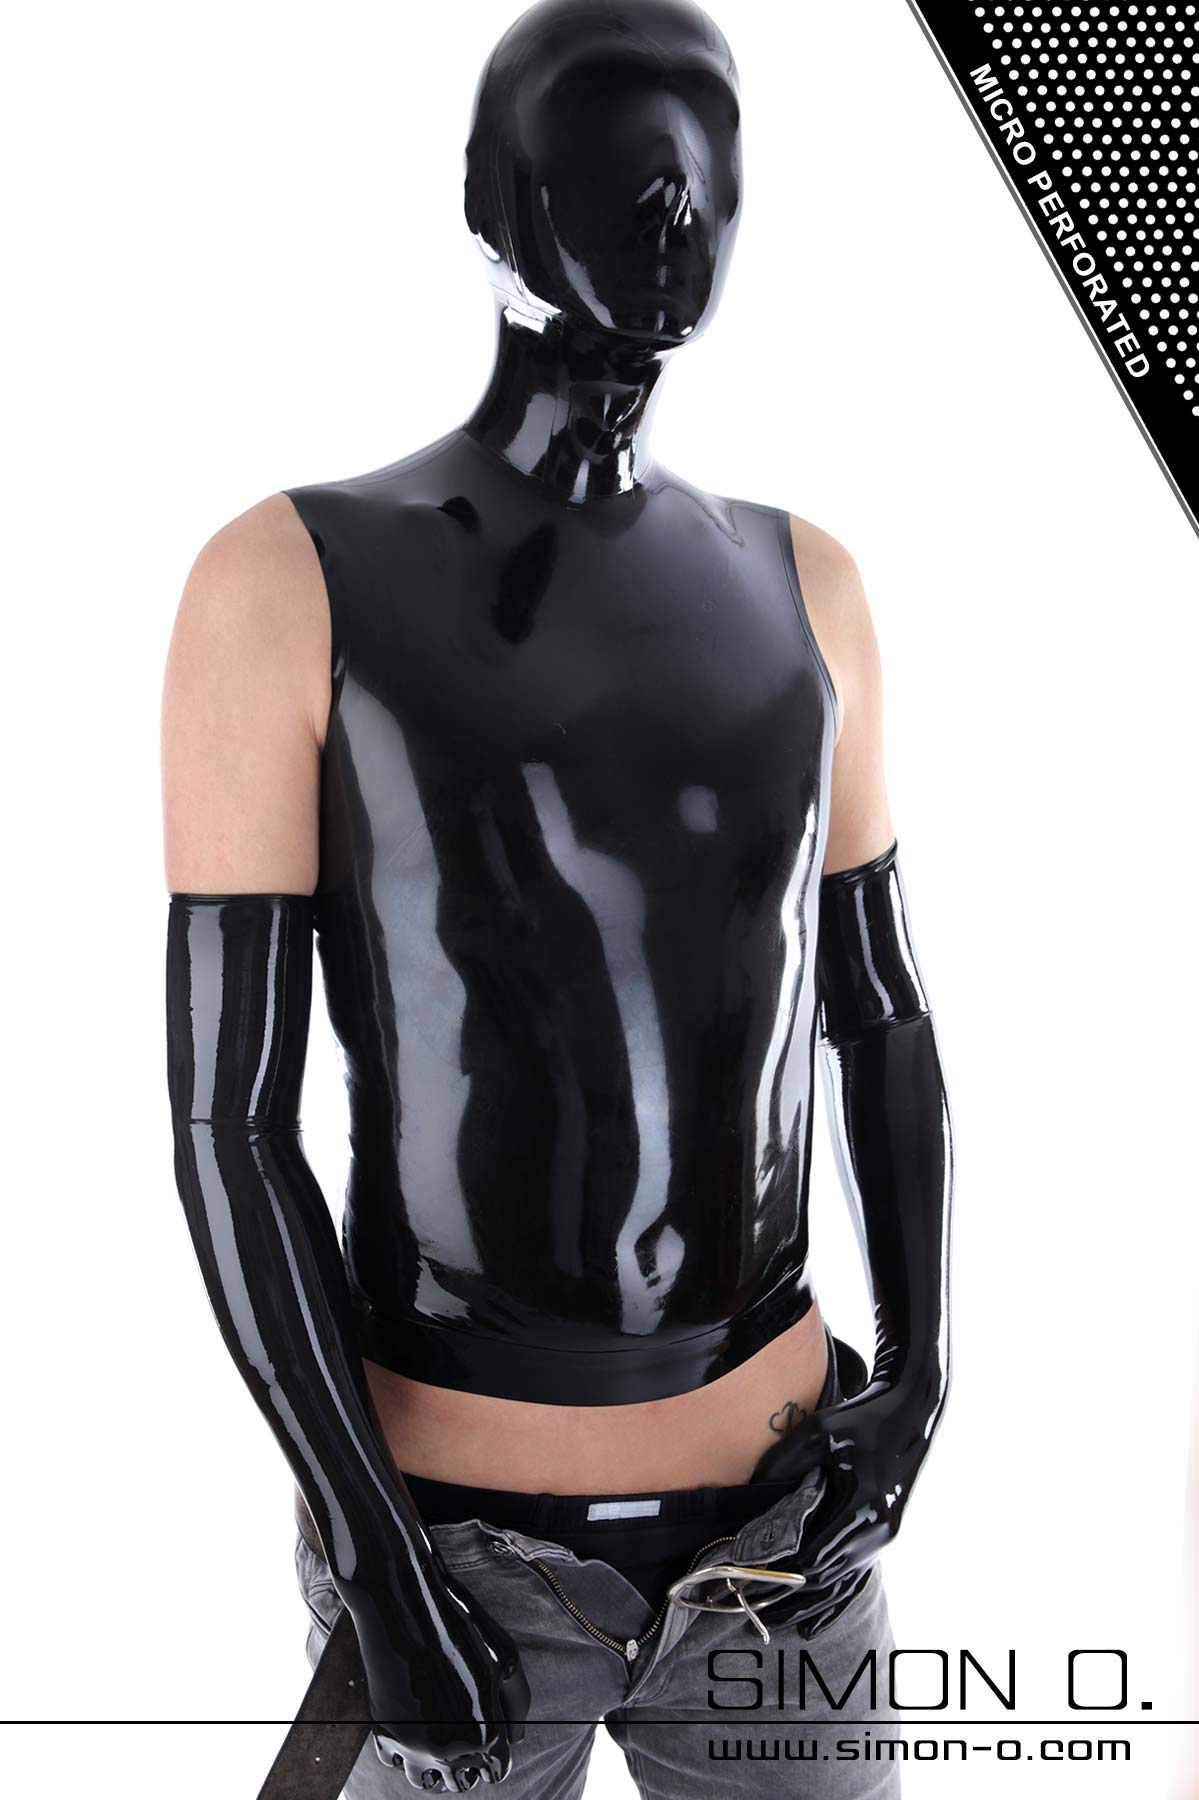 Skintight shiny black latex shirt with attached latex hood seen from behind